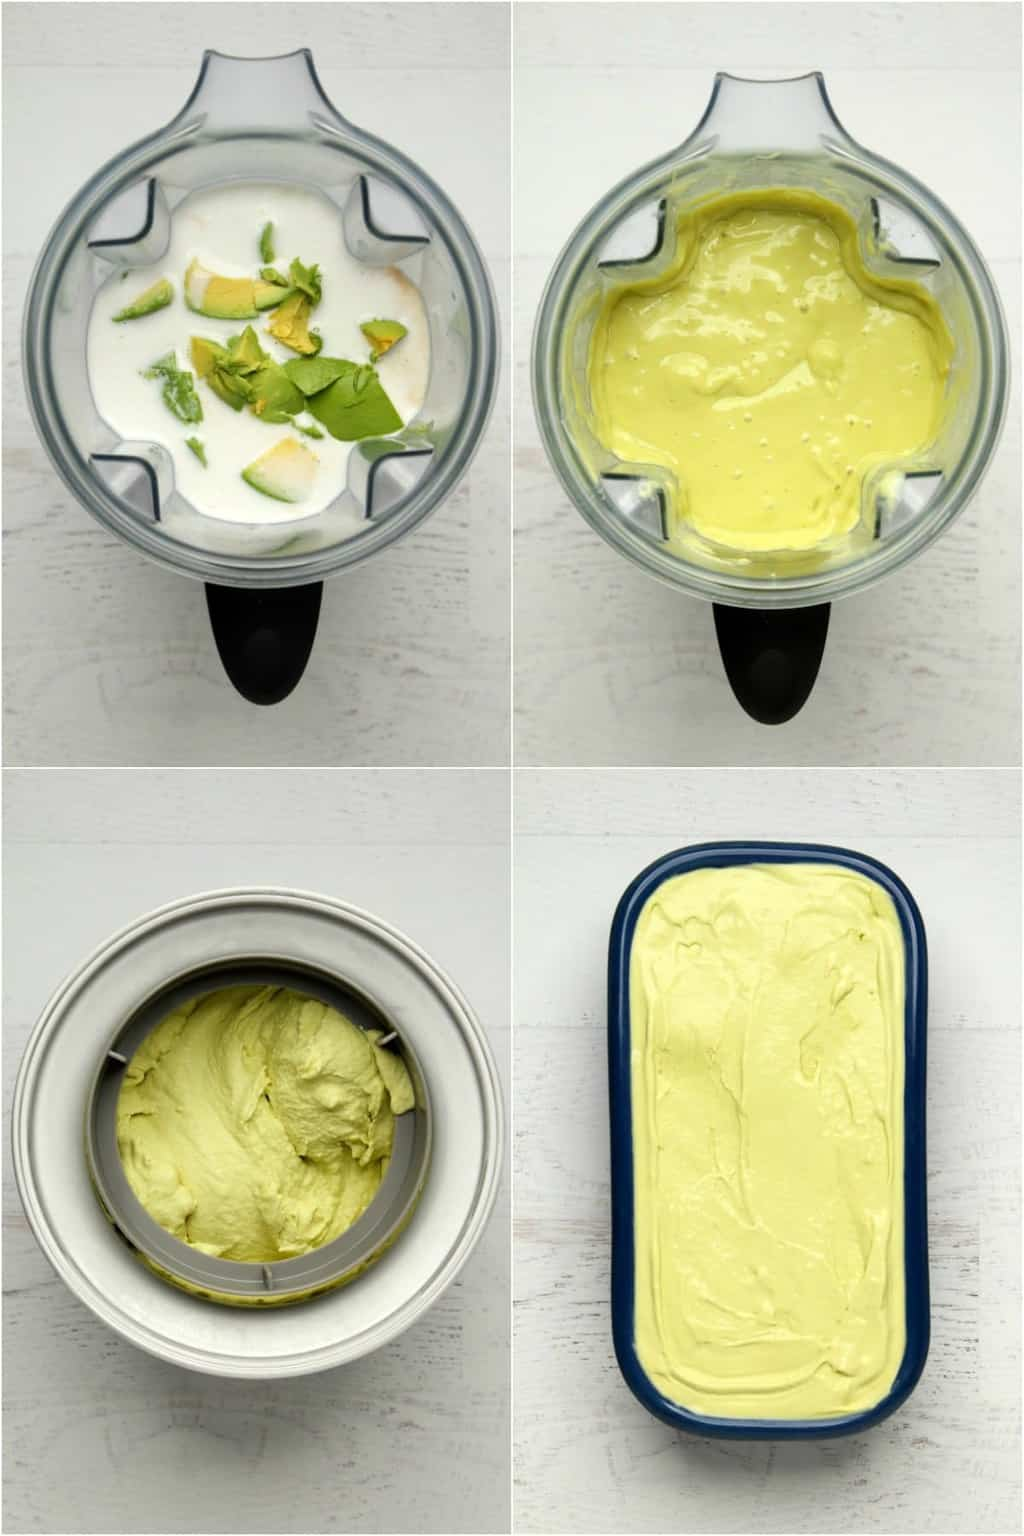 Step by step process photo collage of making vegan avocado ice cream